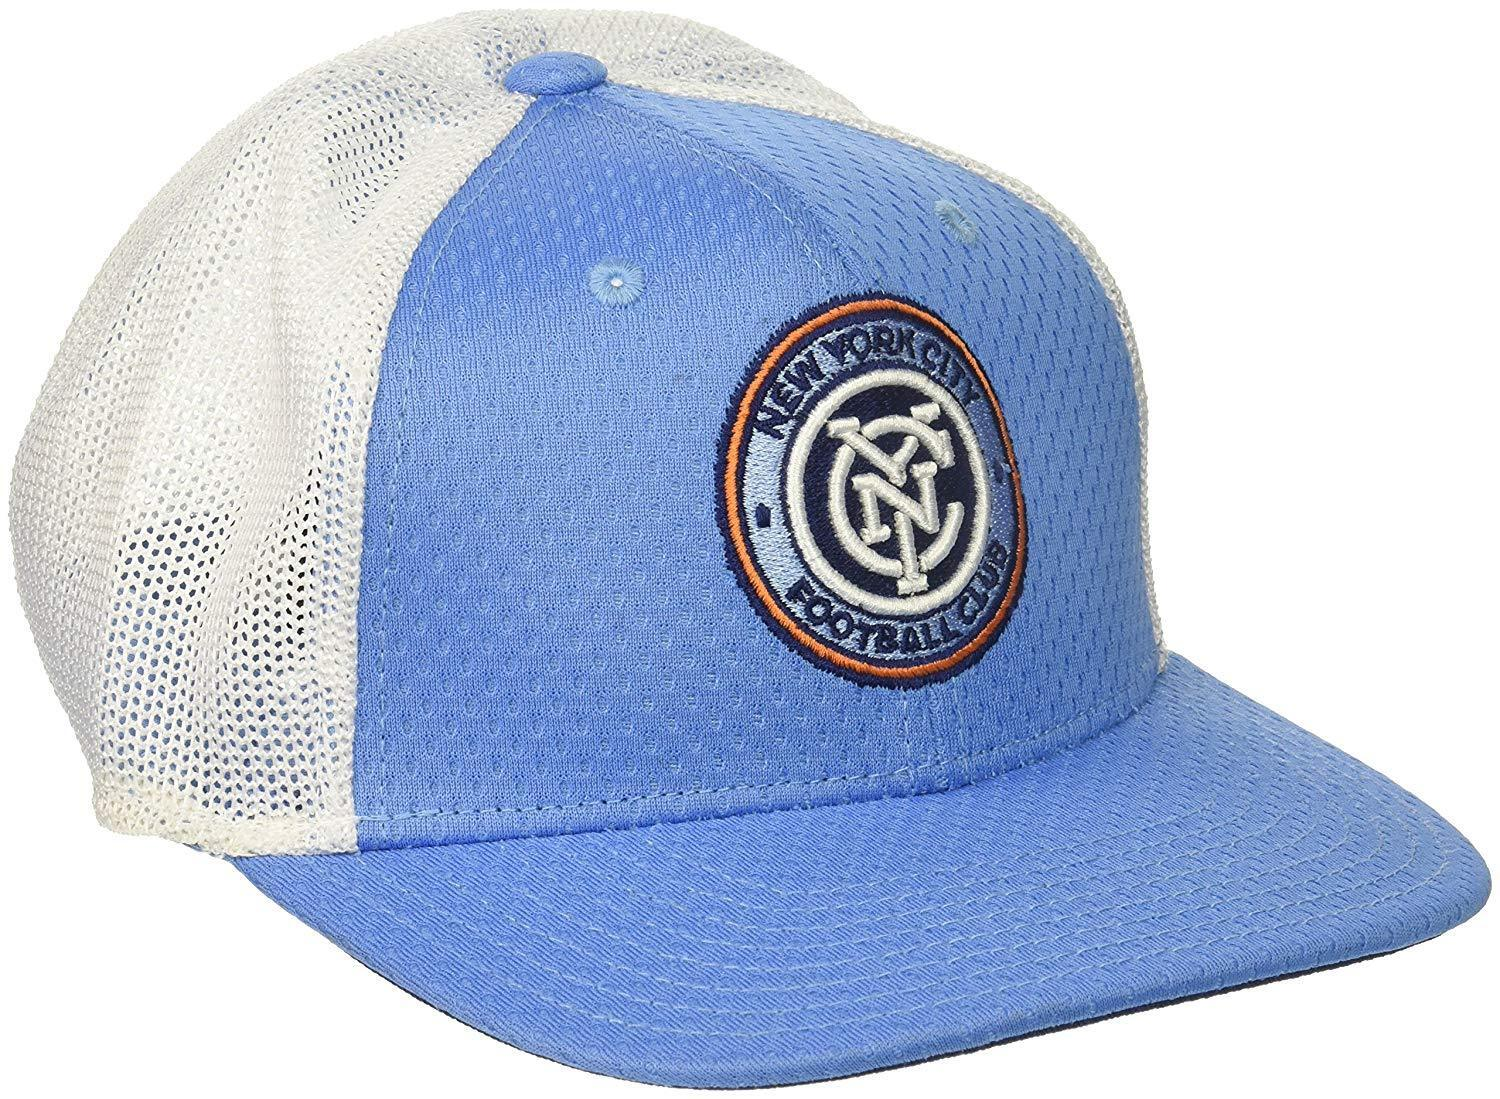 6ad54950256 Be part of your favorite team this season in the officially licensed cap by  adidas.